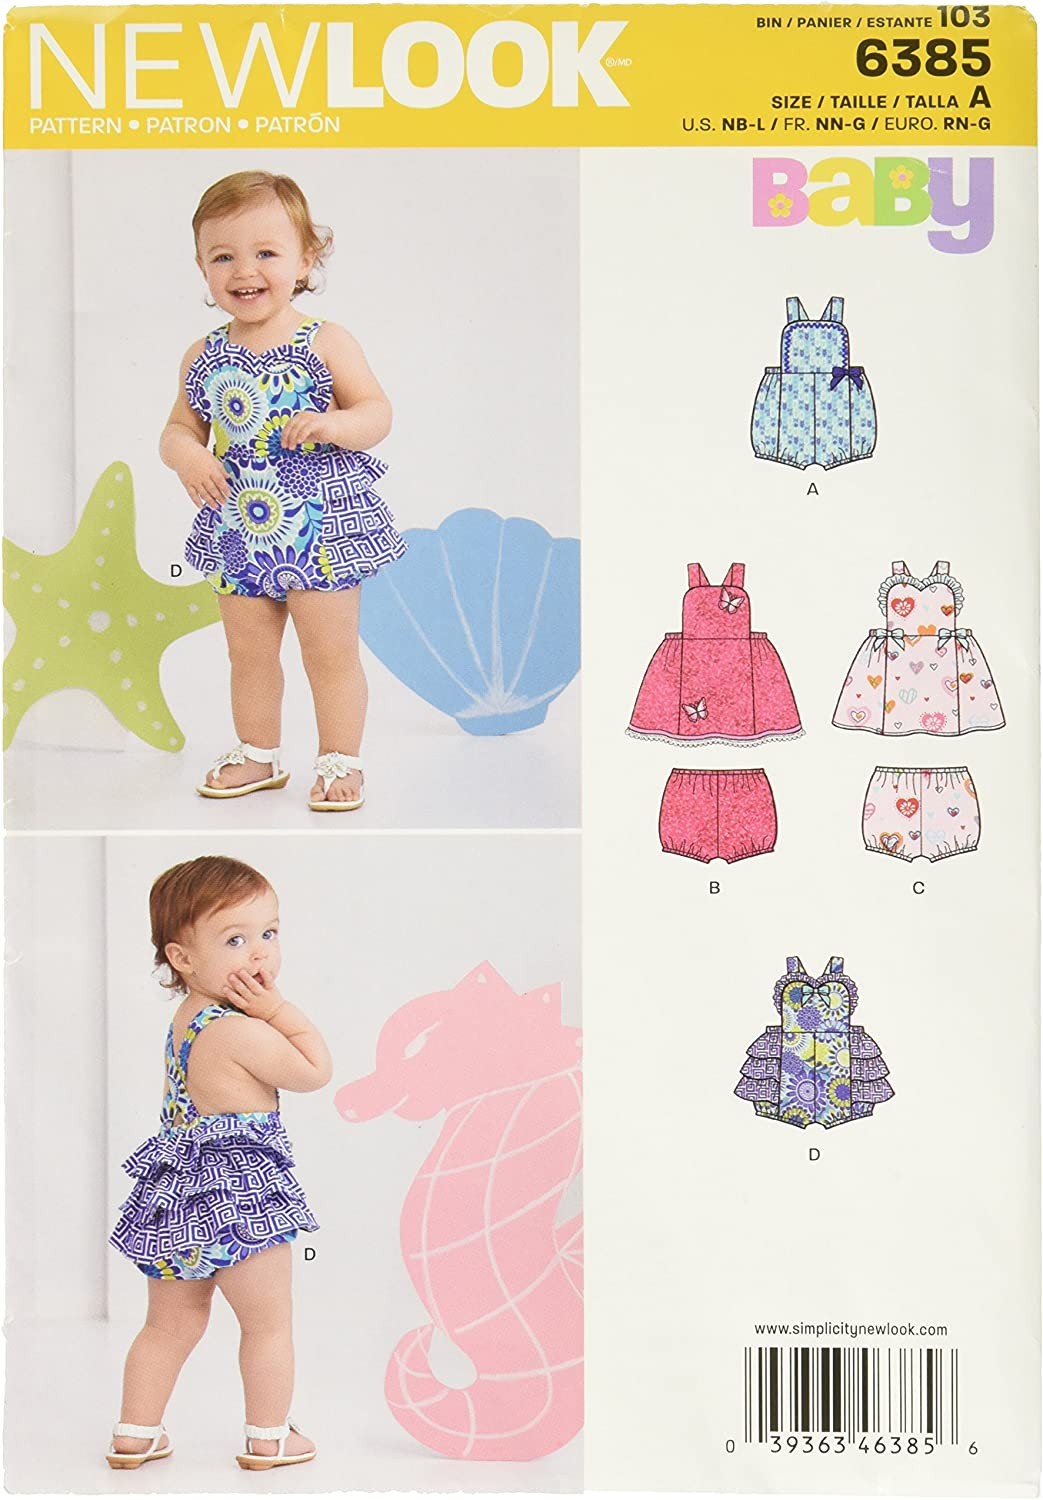 New Look 6385 Babies' Dress Oklahoma City Mall Romper Panties and Size Ranking TOP16 Sewing Kit